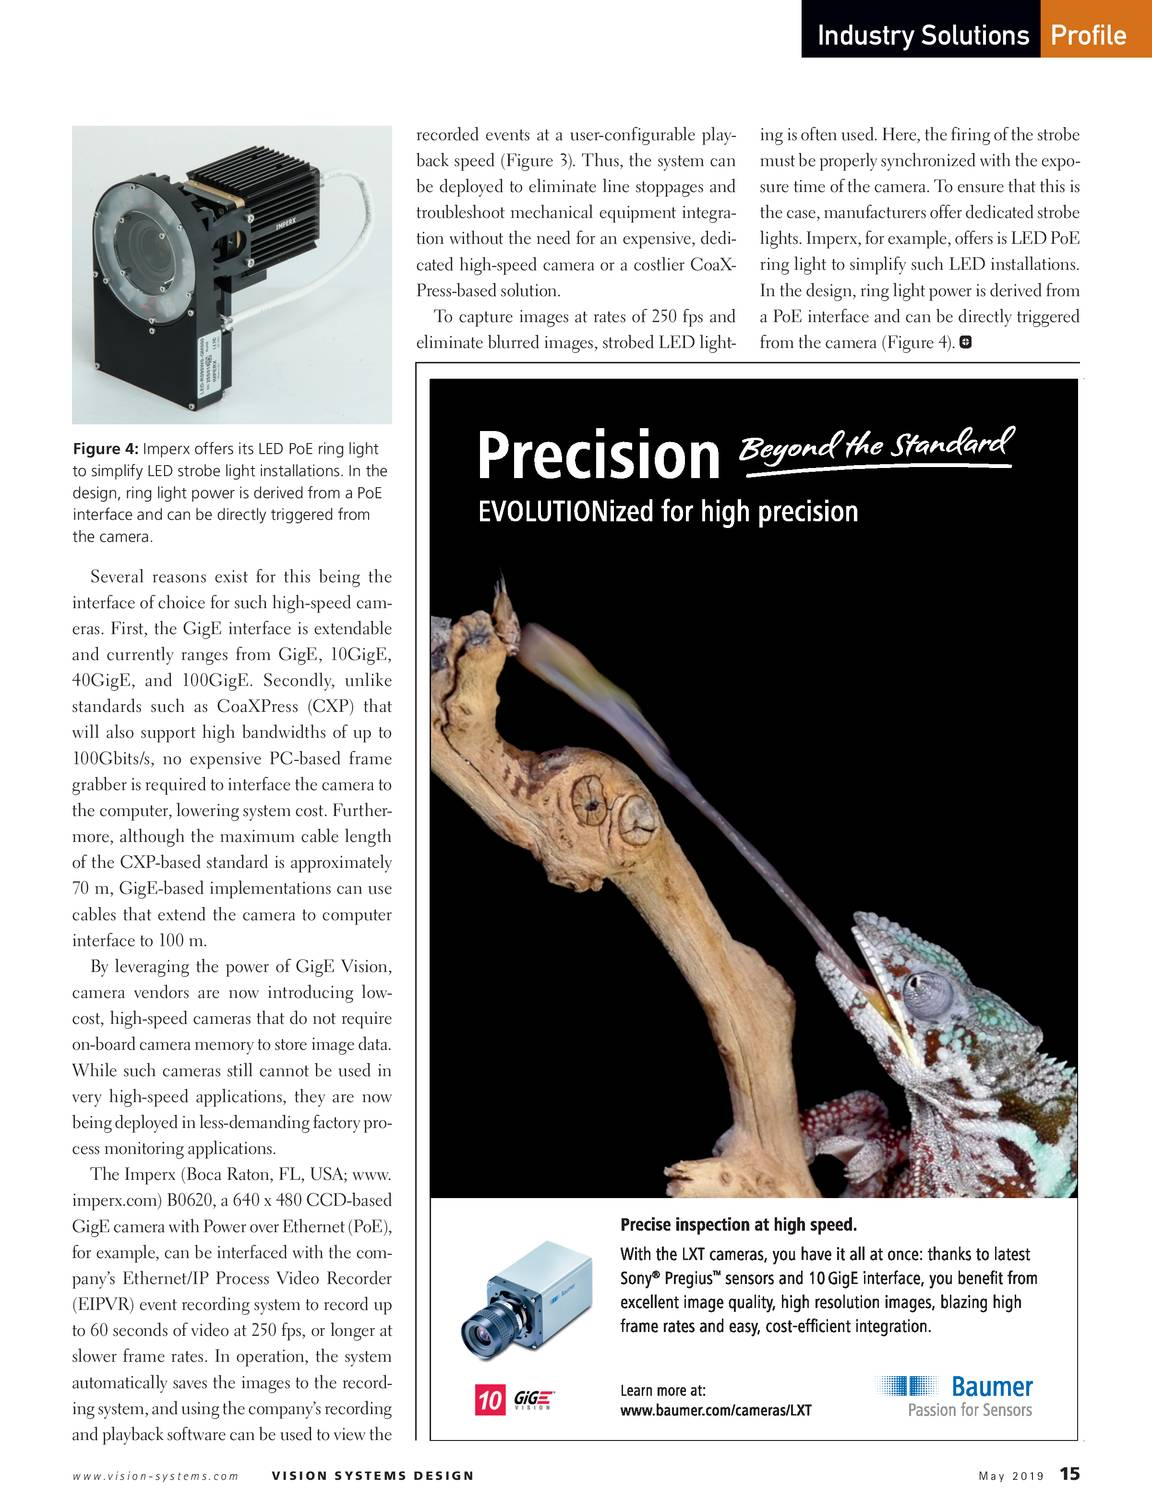 Vision Systems - May 2019 - page 16